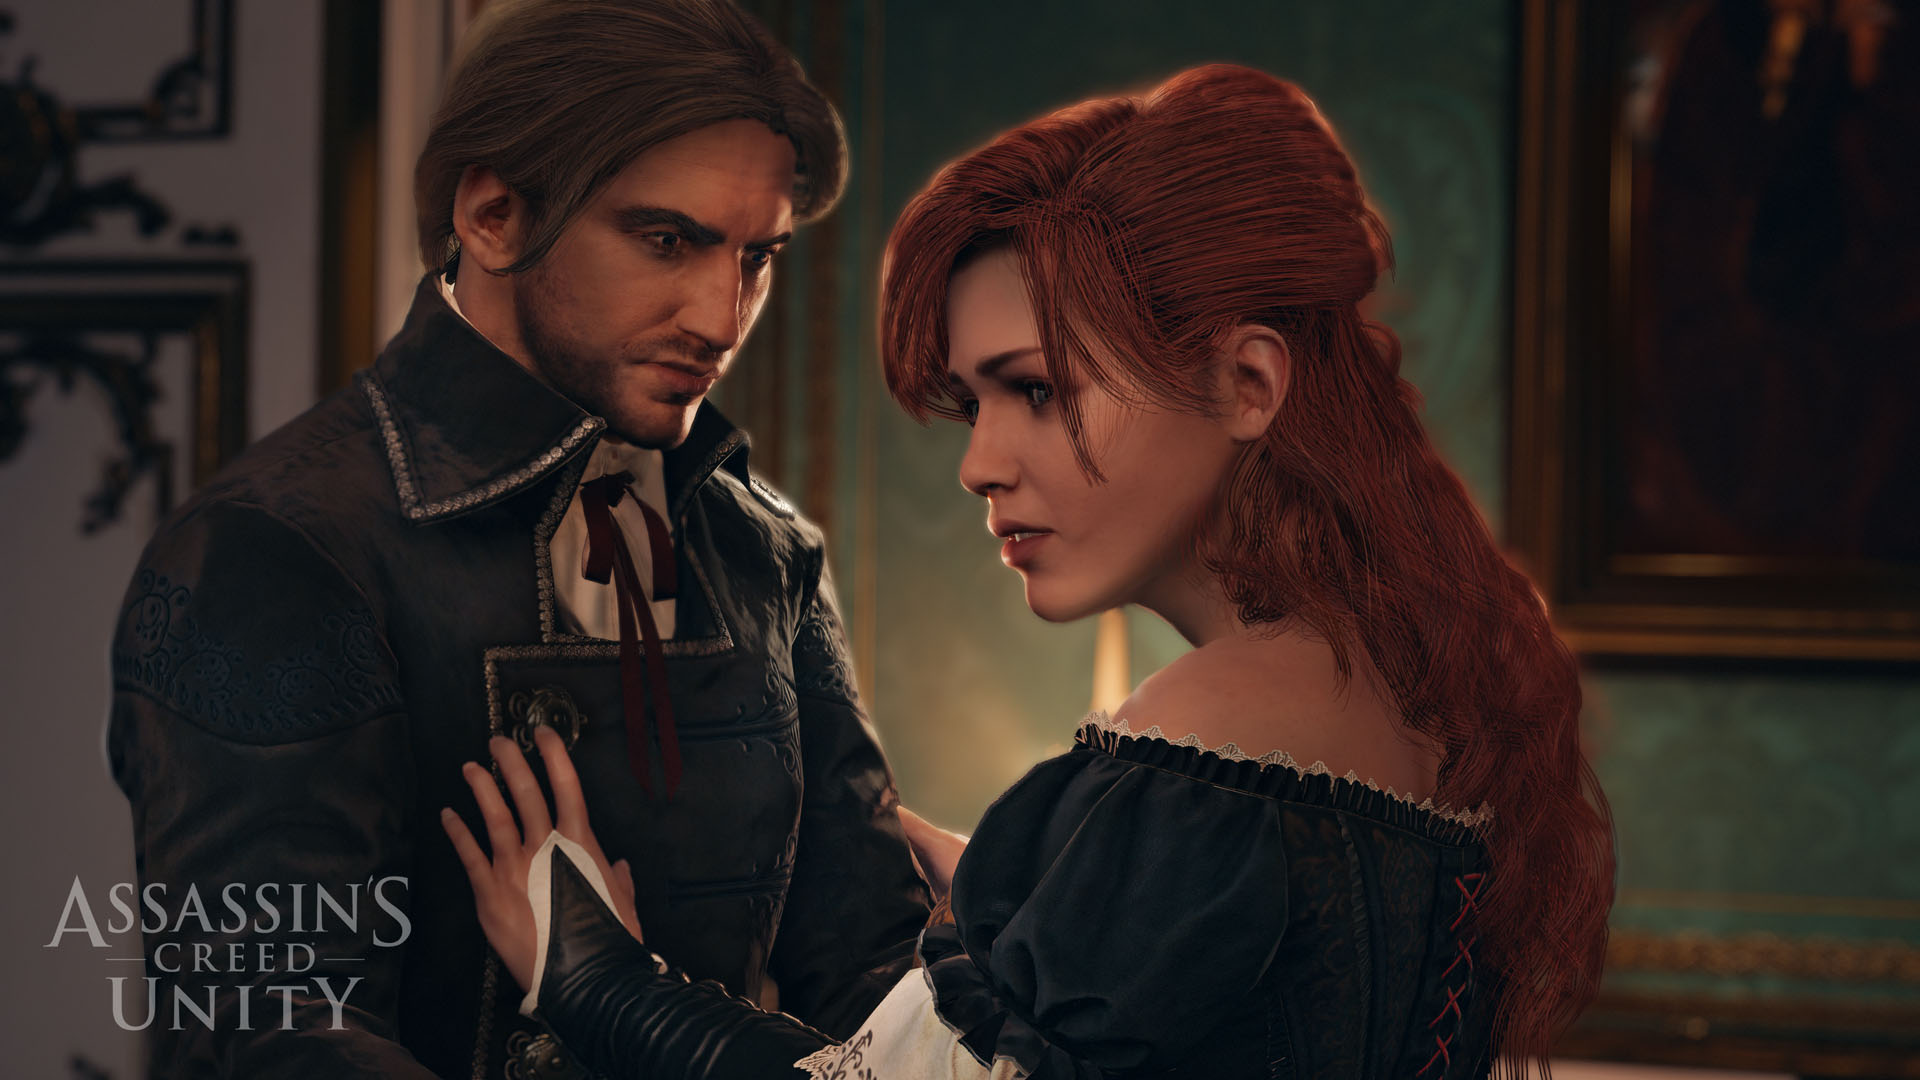 Assassins_Creed_Unity_SP_ArnoAndElise_1409669061